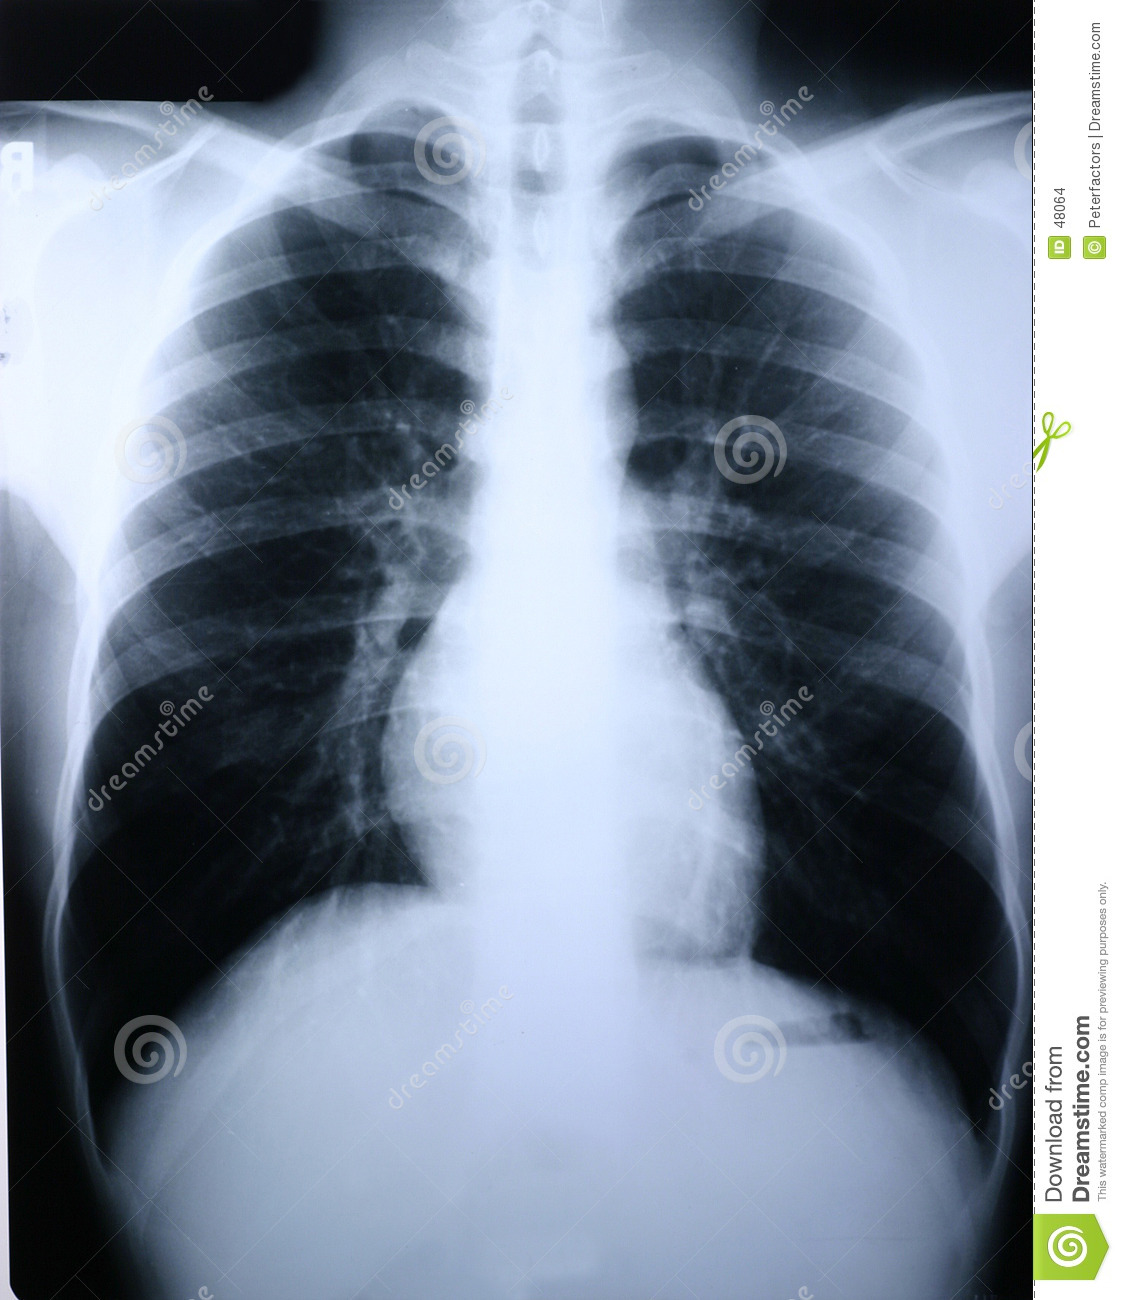 Xray/lung